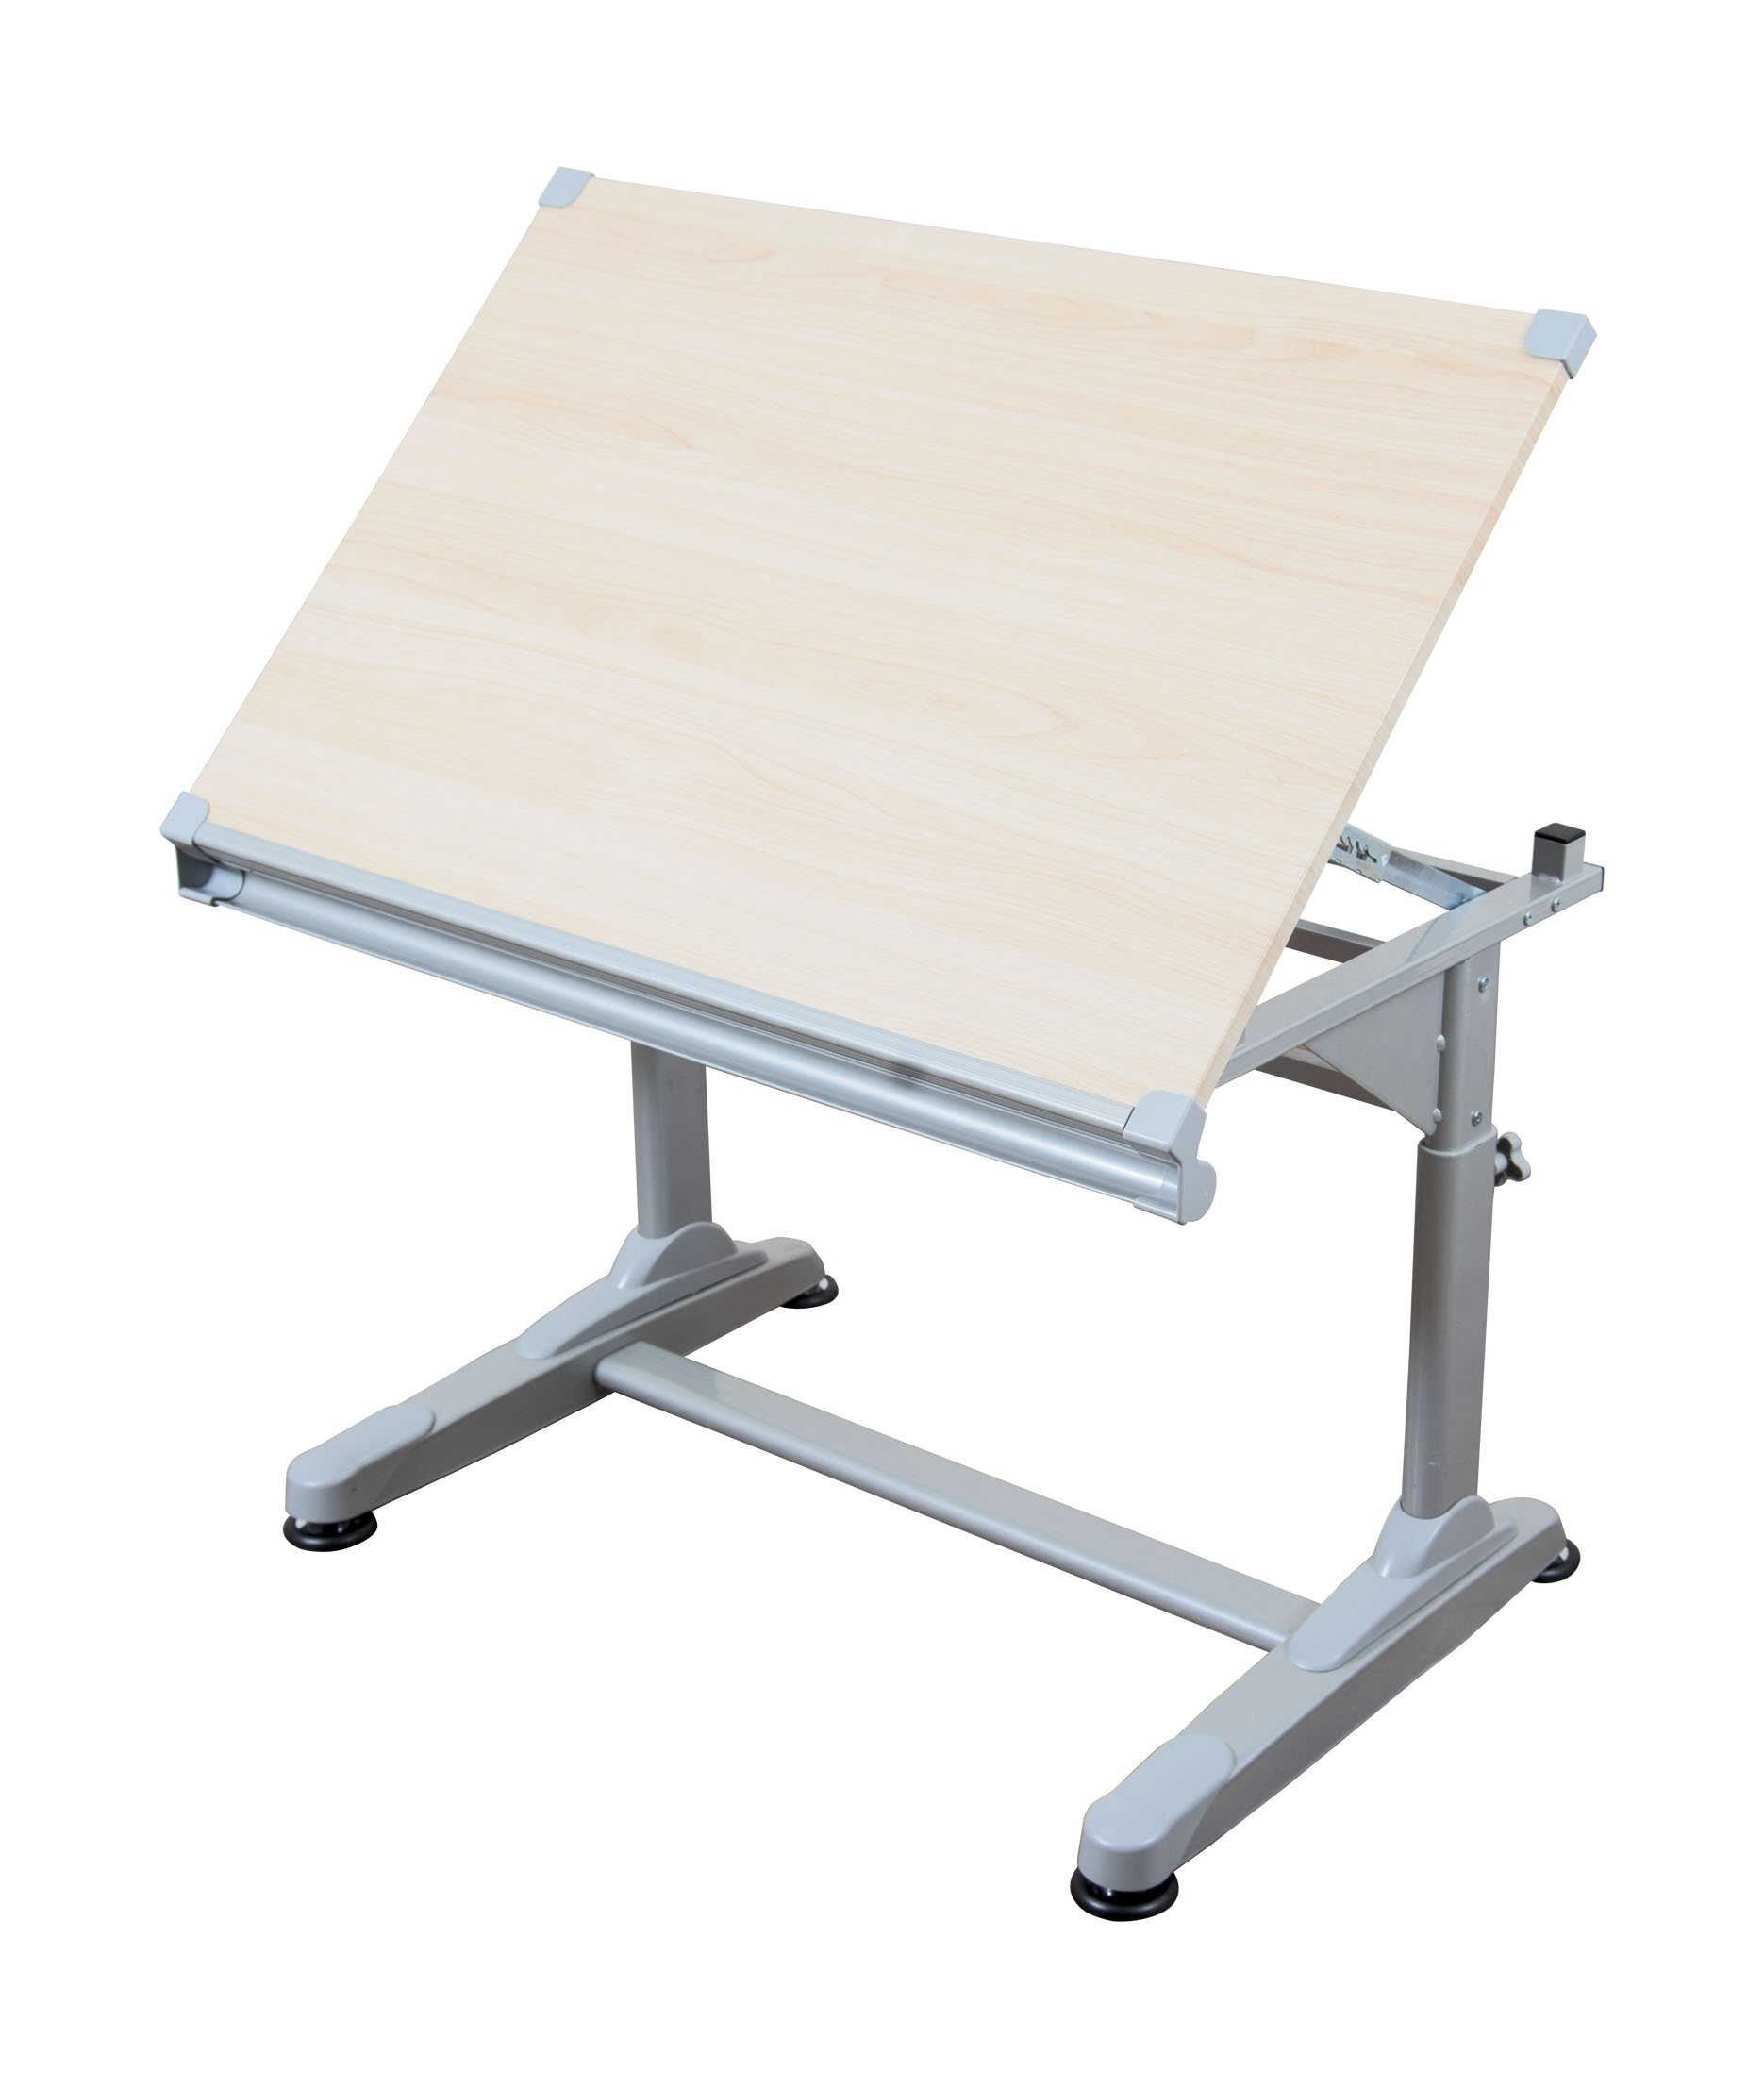 available and pin sizes medium erase up store desk shop boards dry glass stand in large